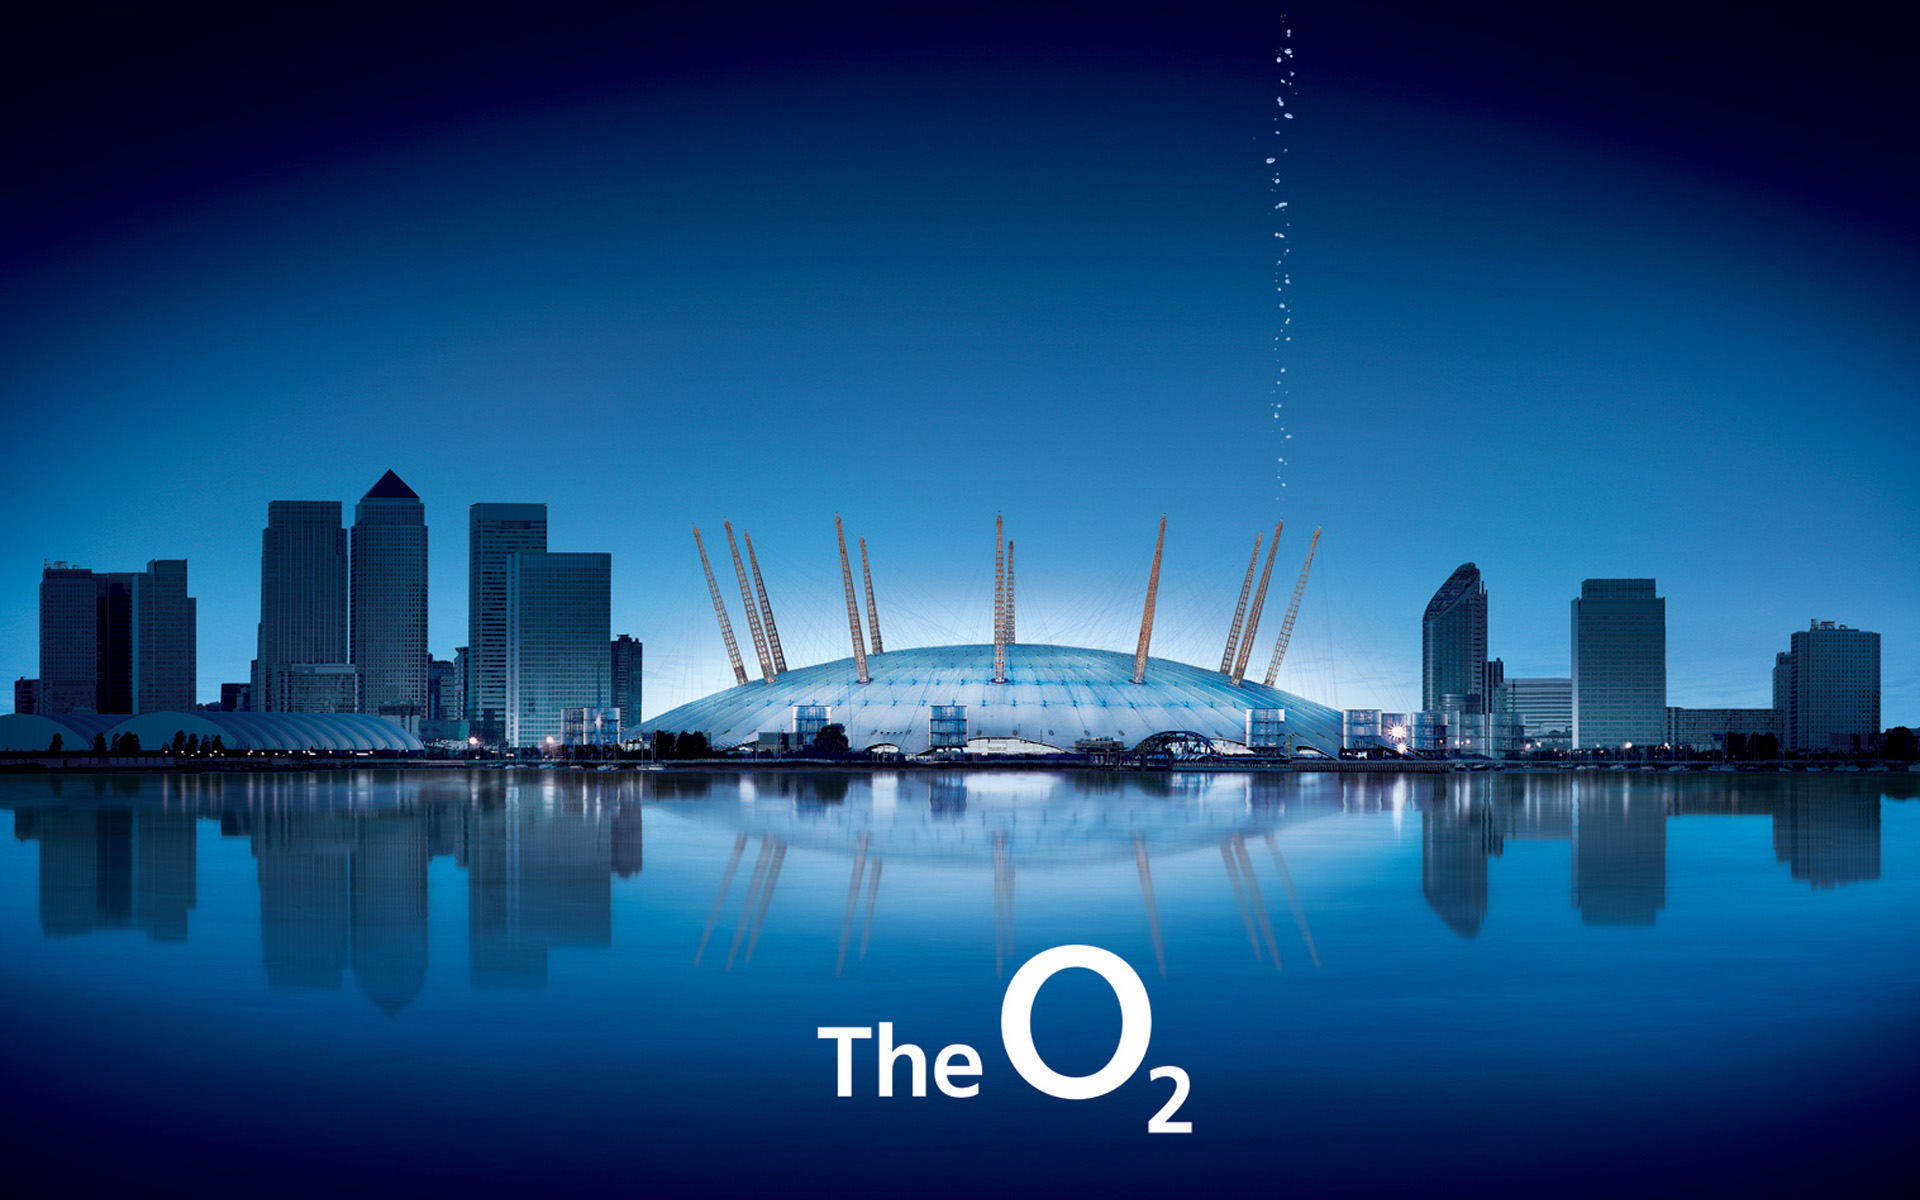 HD Wallpapers The O2 Arena